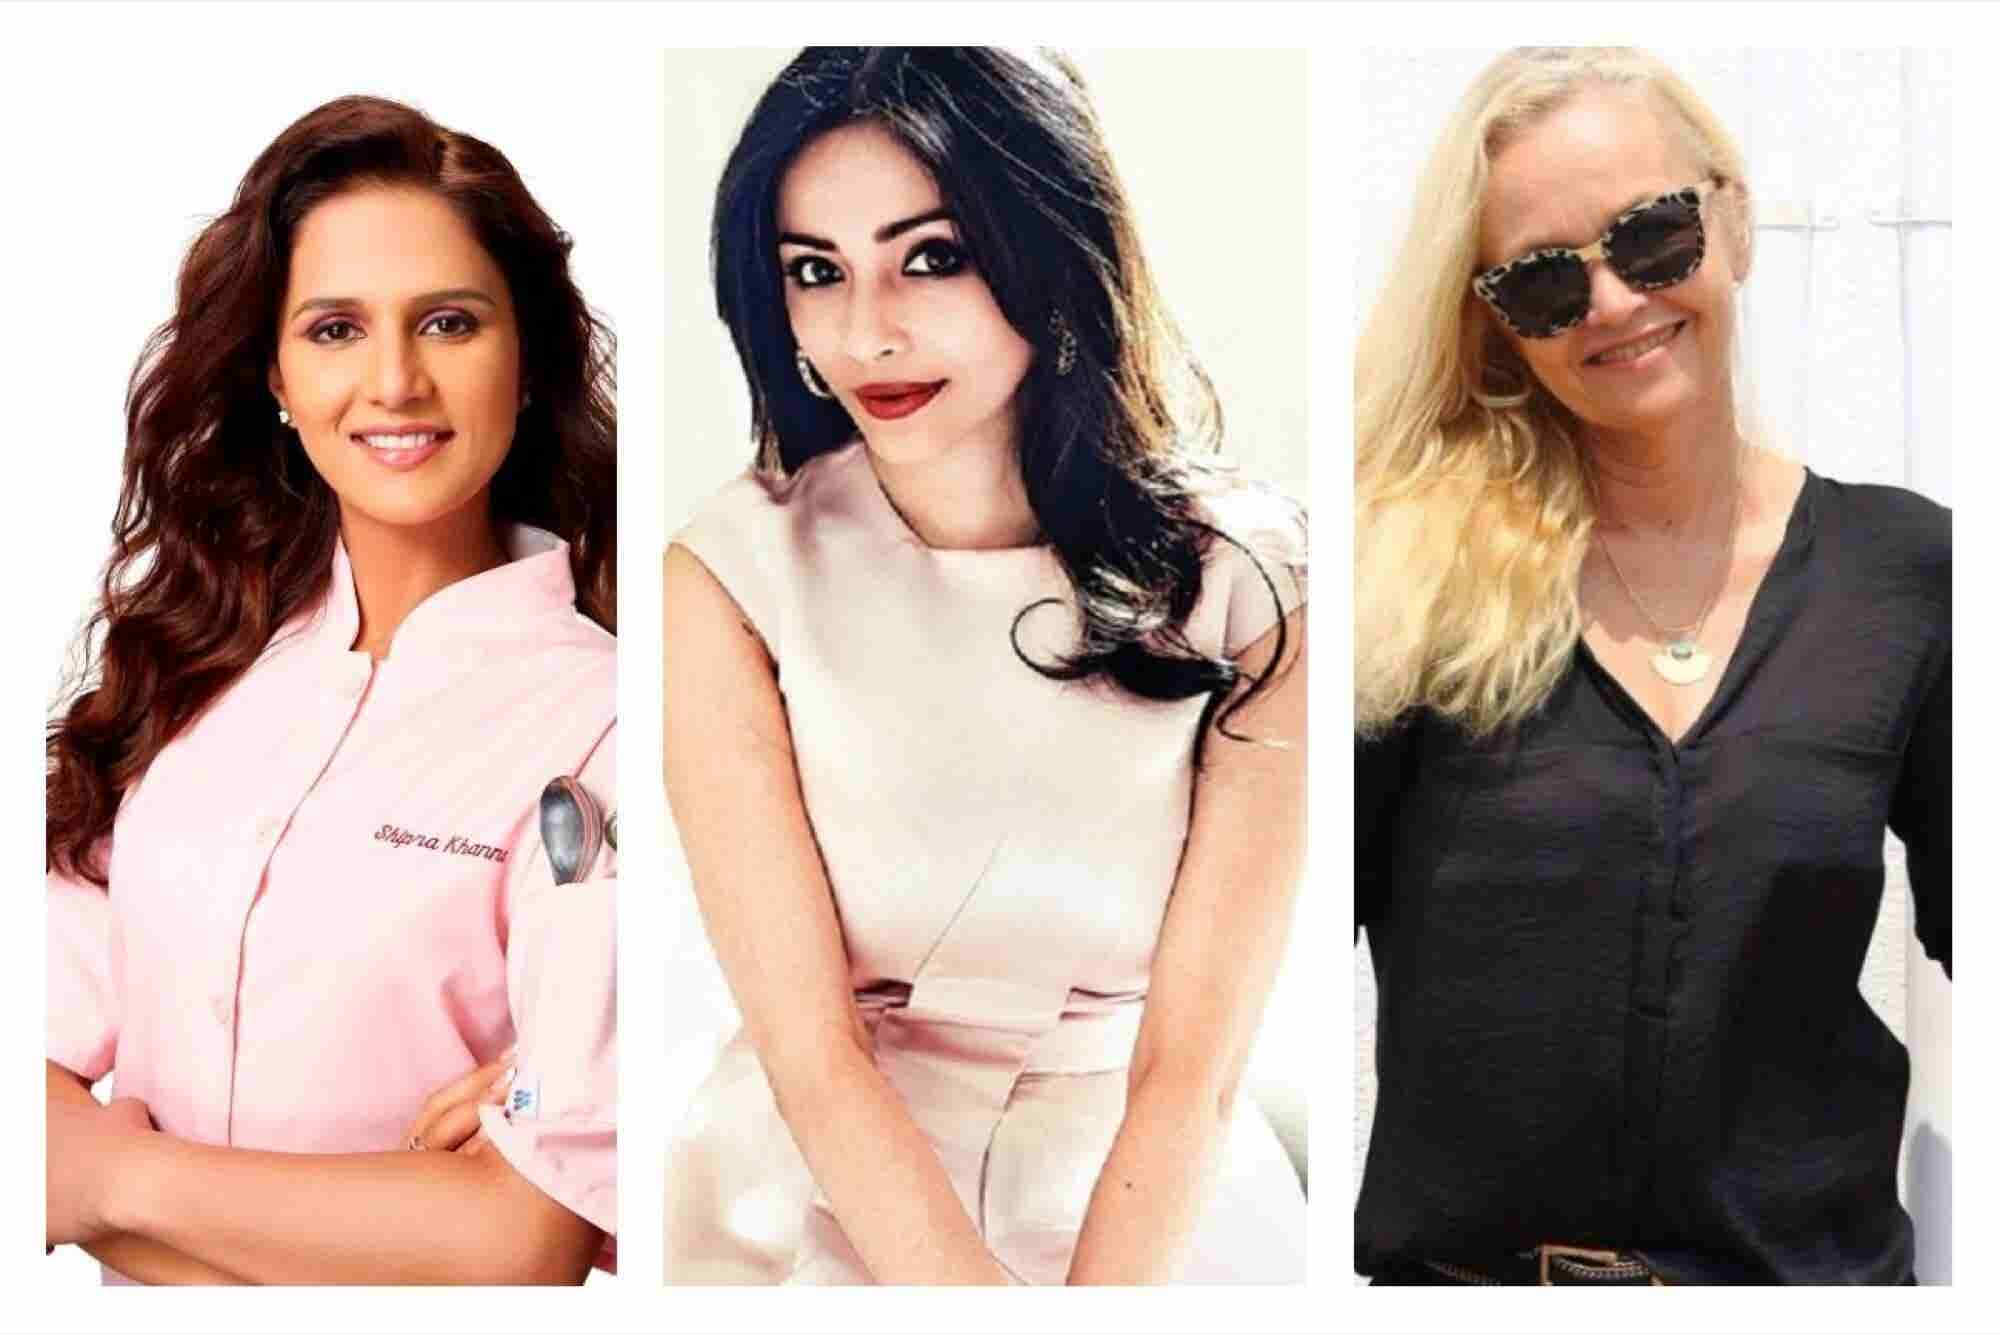 Personal Setbacks Didn't Stop These Women from Flying High